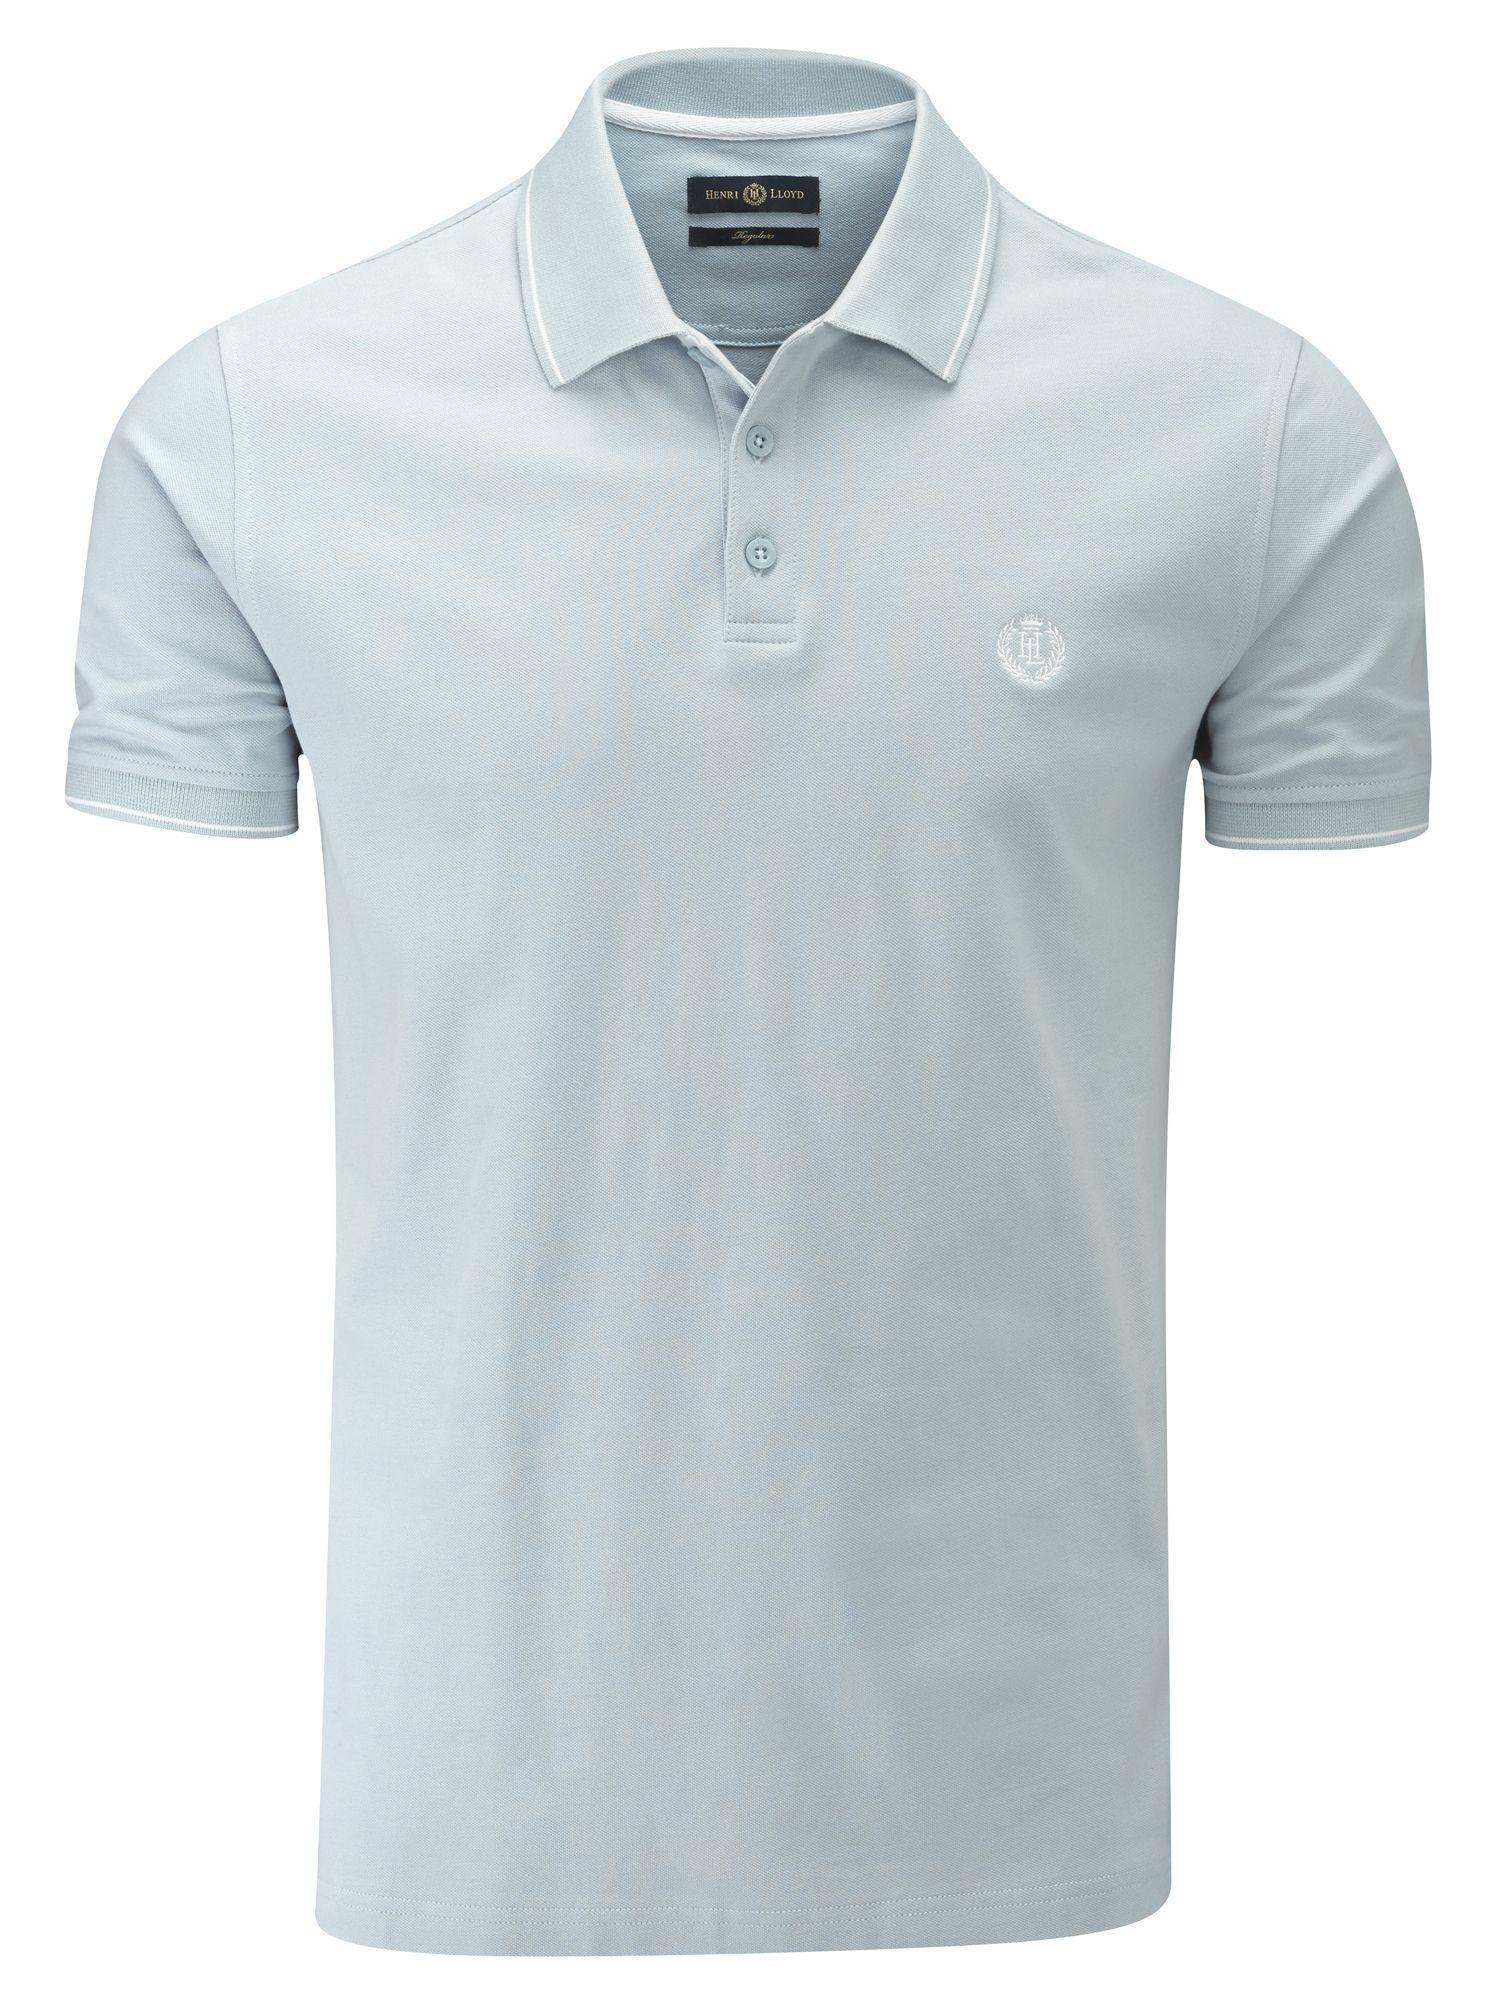 Men's Henri Lloyd Abington Regular Polo Shirt, Blue